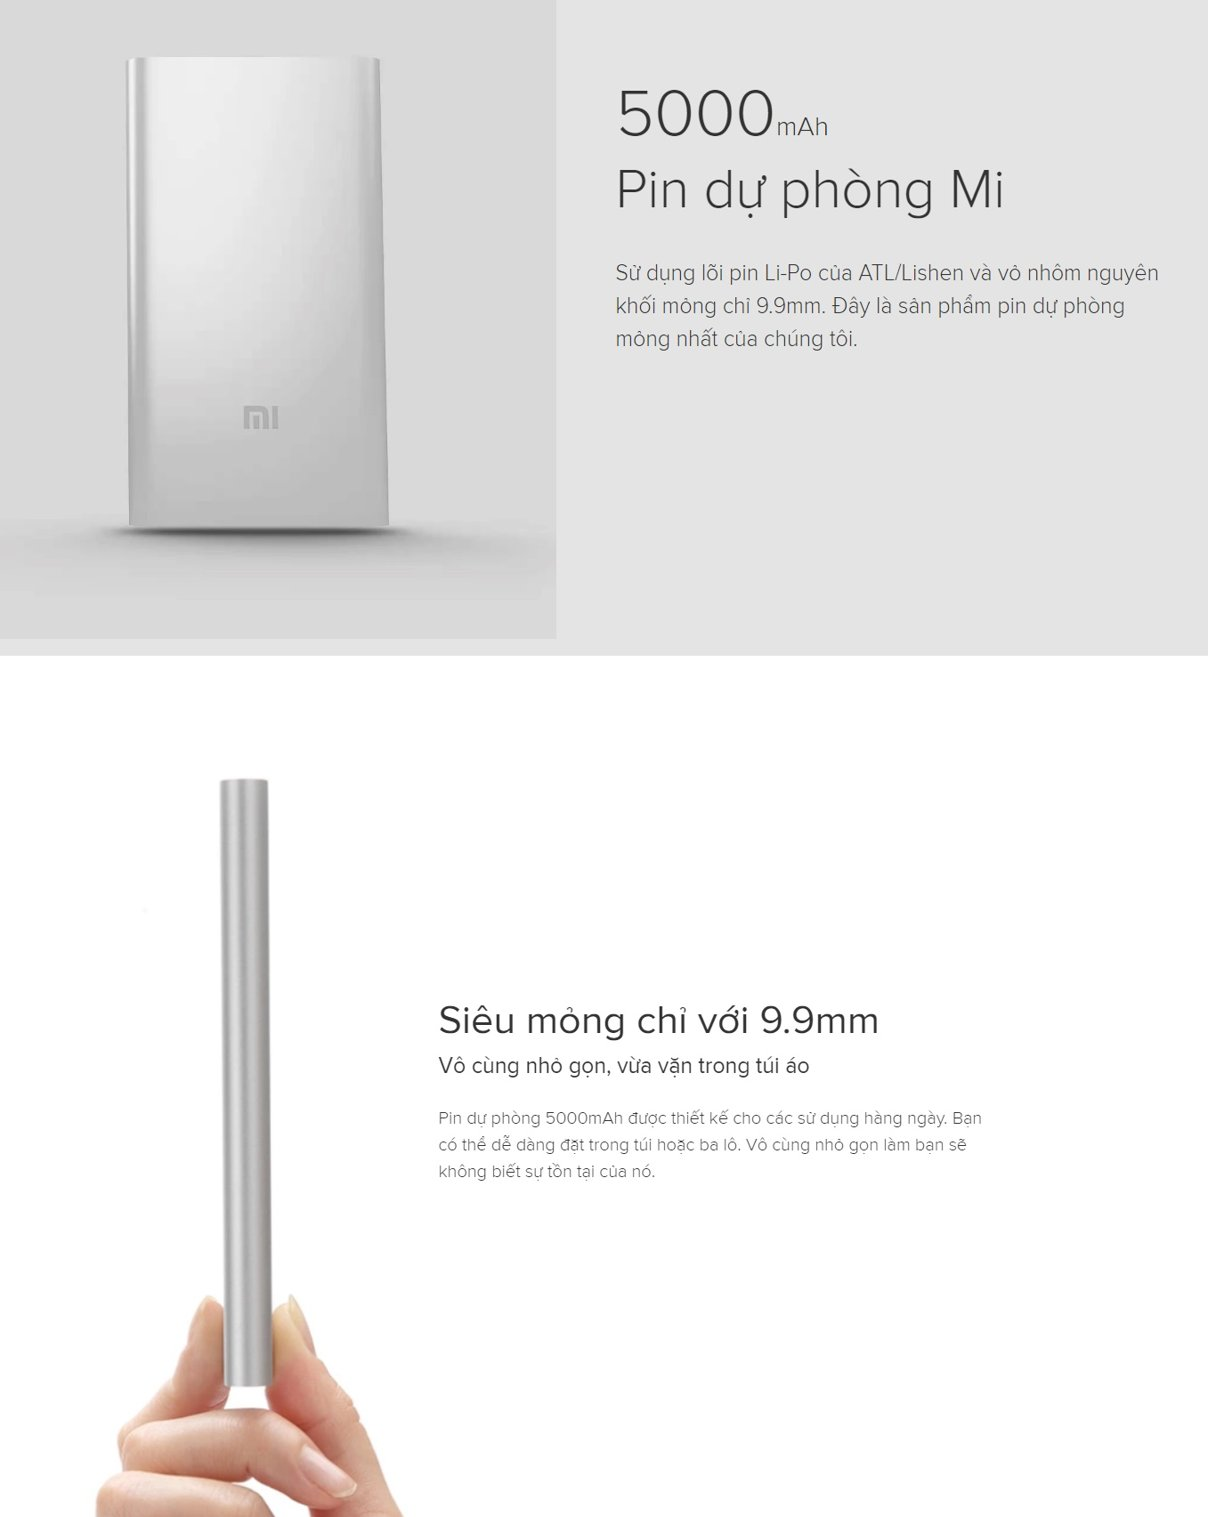 MI2 Xiaomi 5000mAh GLOBAL BAC SILVER VXN4236GL Pin sac du phong in logo qua tang khach hang